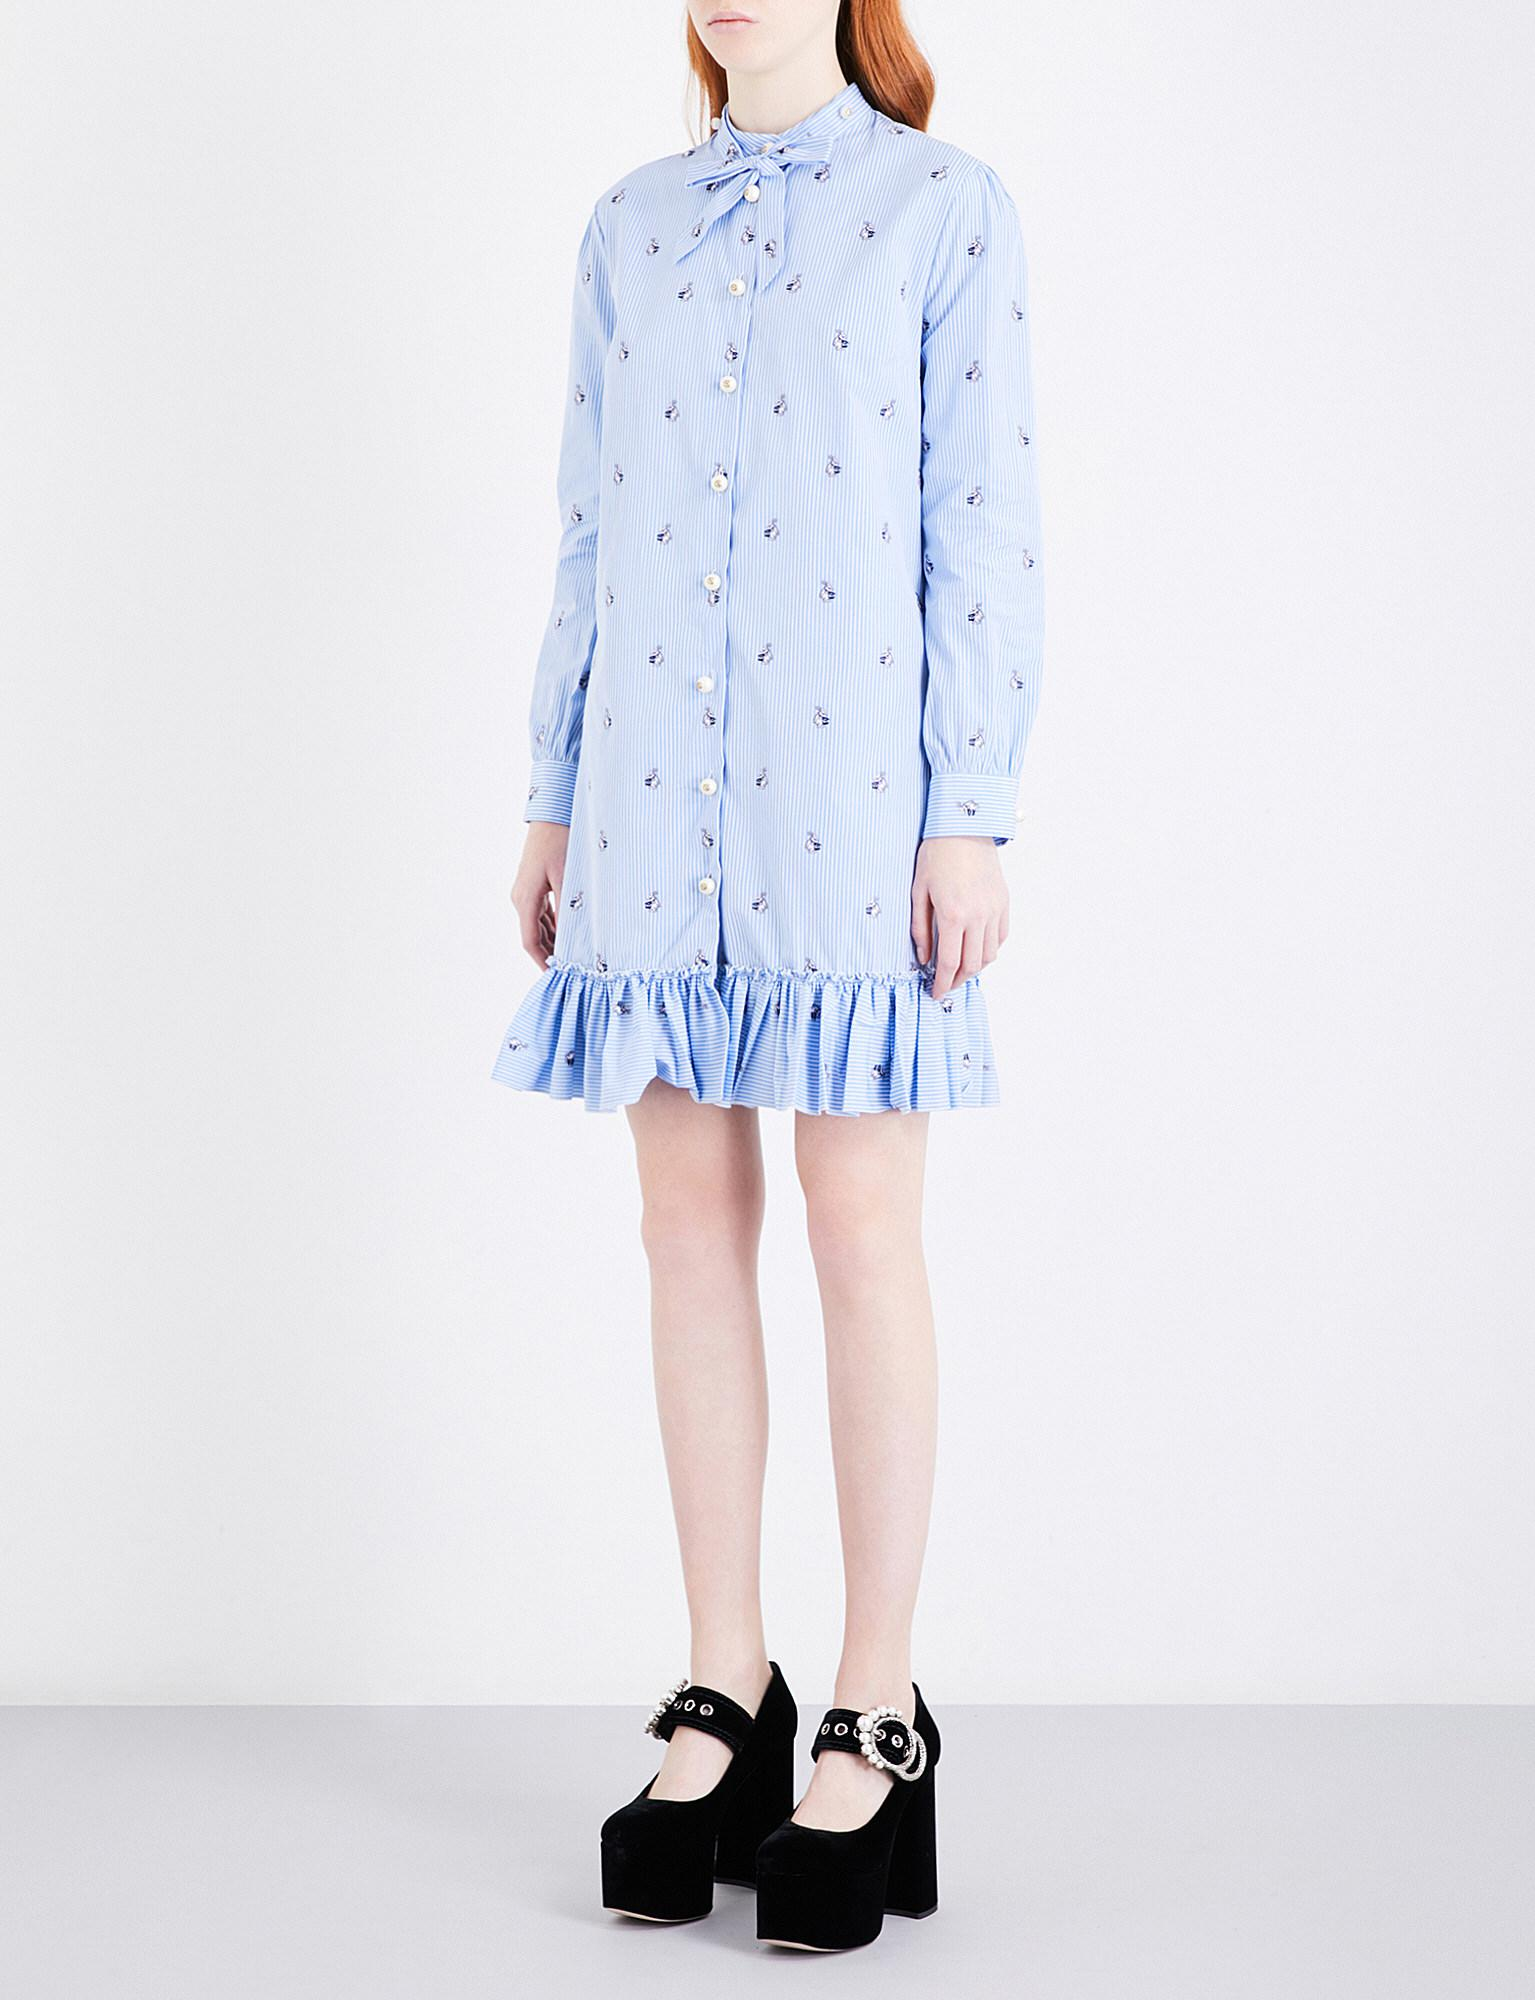 d722afcfdbe Lyst - Gucci Rabbit-embroidered Cotton Dress in Blue